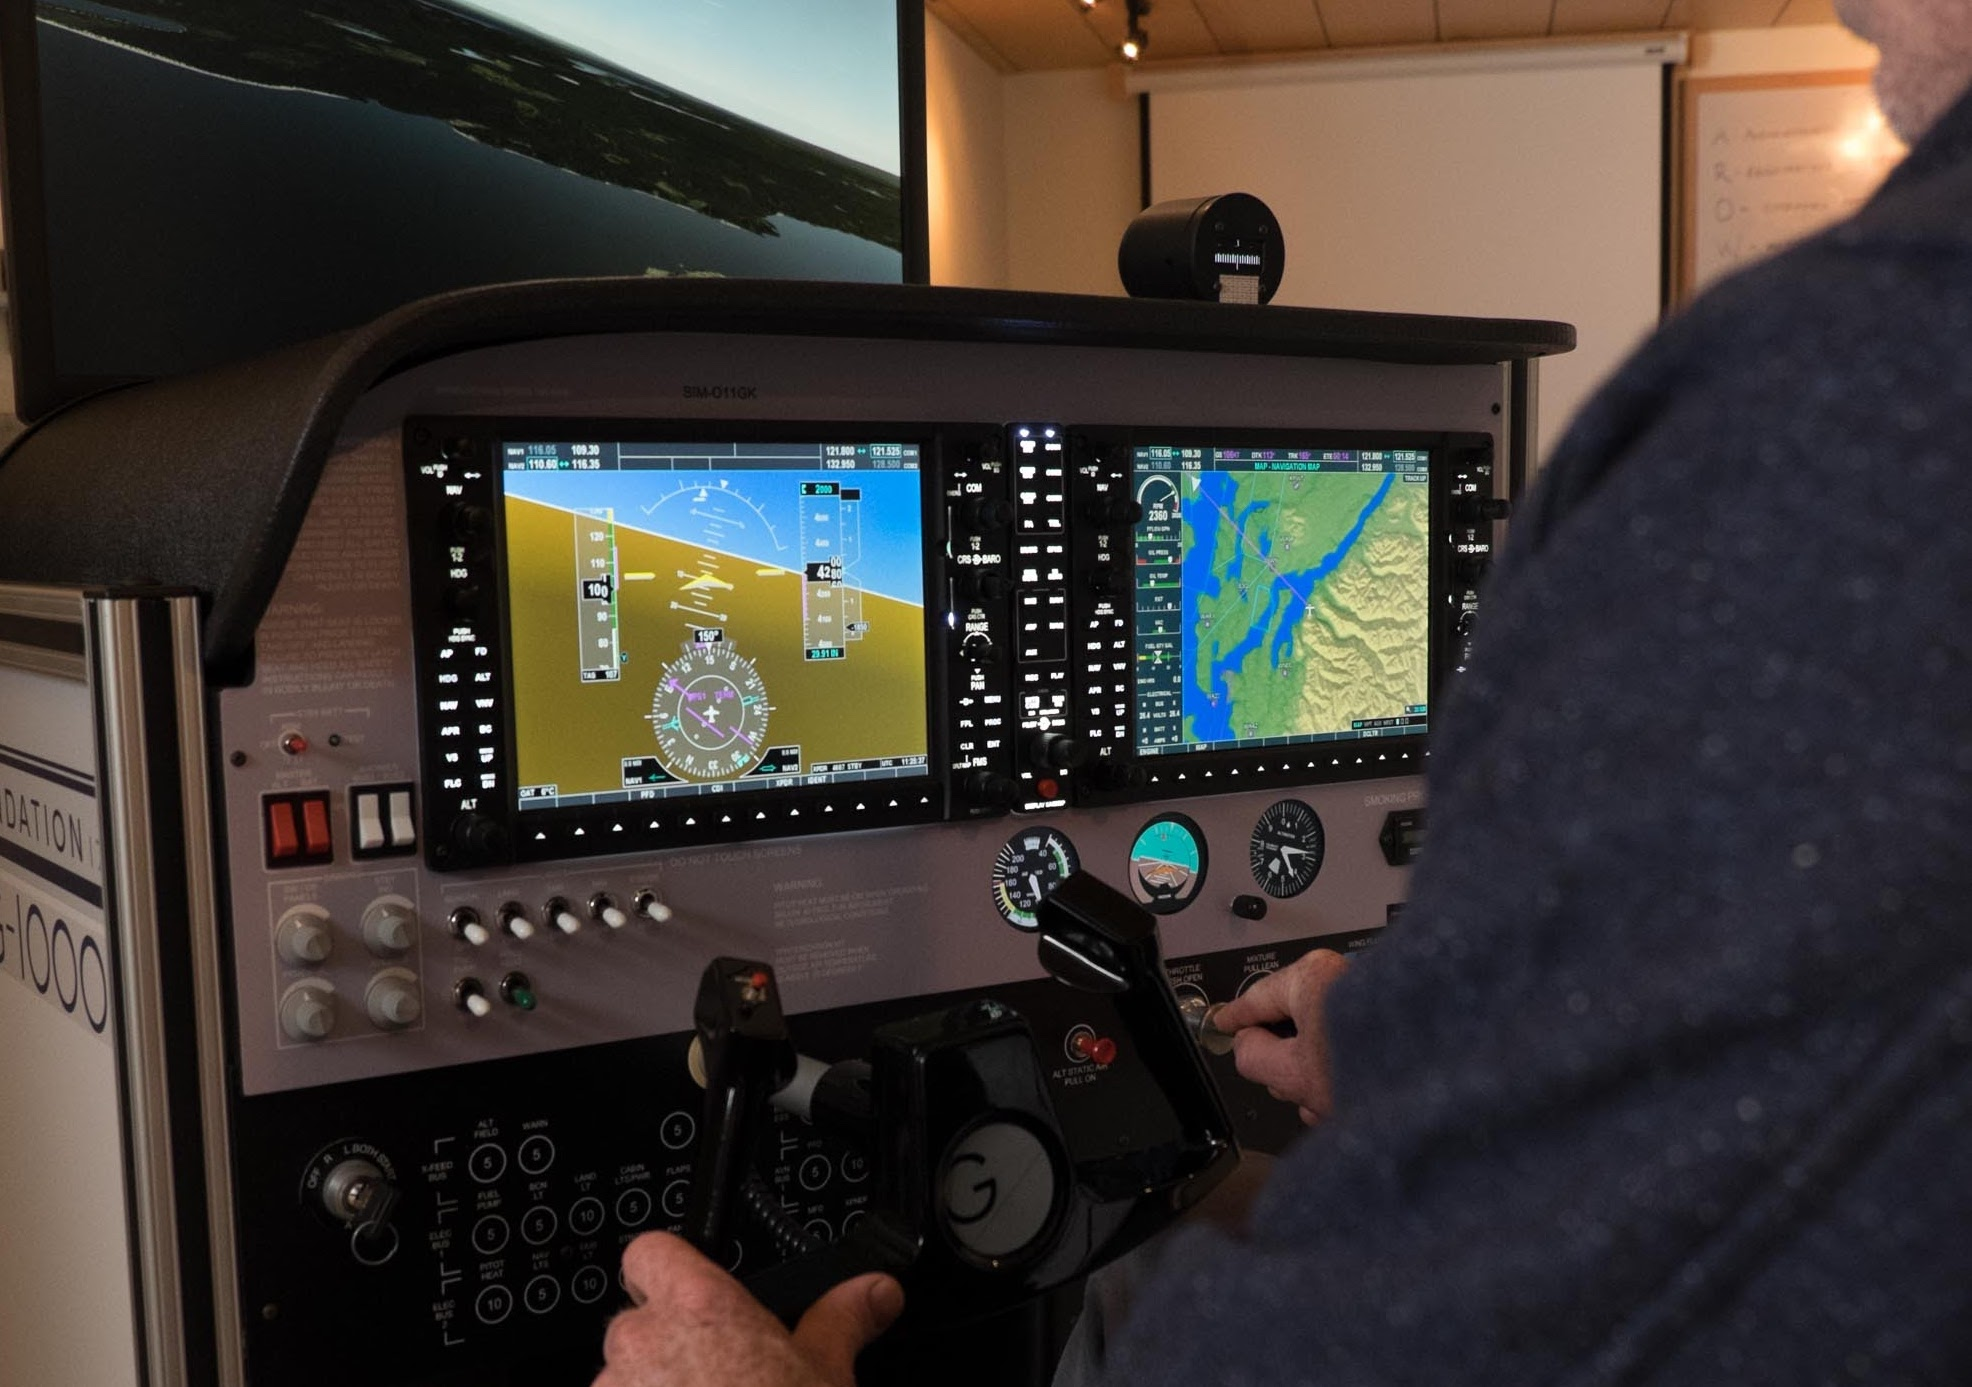 The one-G Portal - The one-G Portal™ includes an array of helpful tools to streamline the administrative aspects of pilot training including logging instructor and student training hours, training related documents and resources, record keeping, account maintenance and billing. All of which are available through the secure online one-G Portal™.